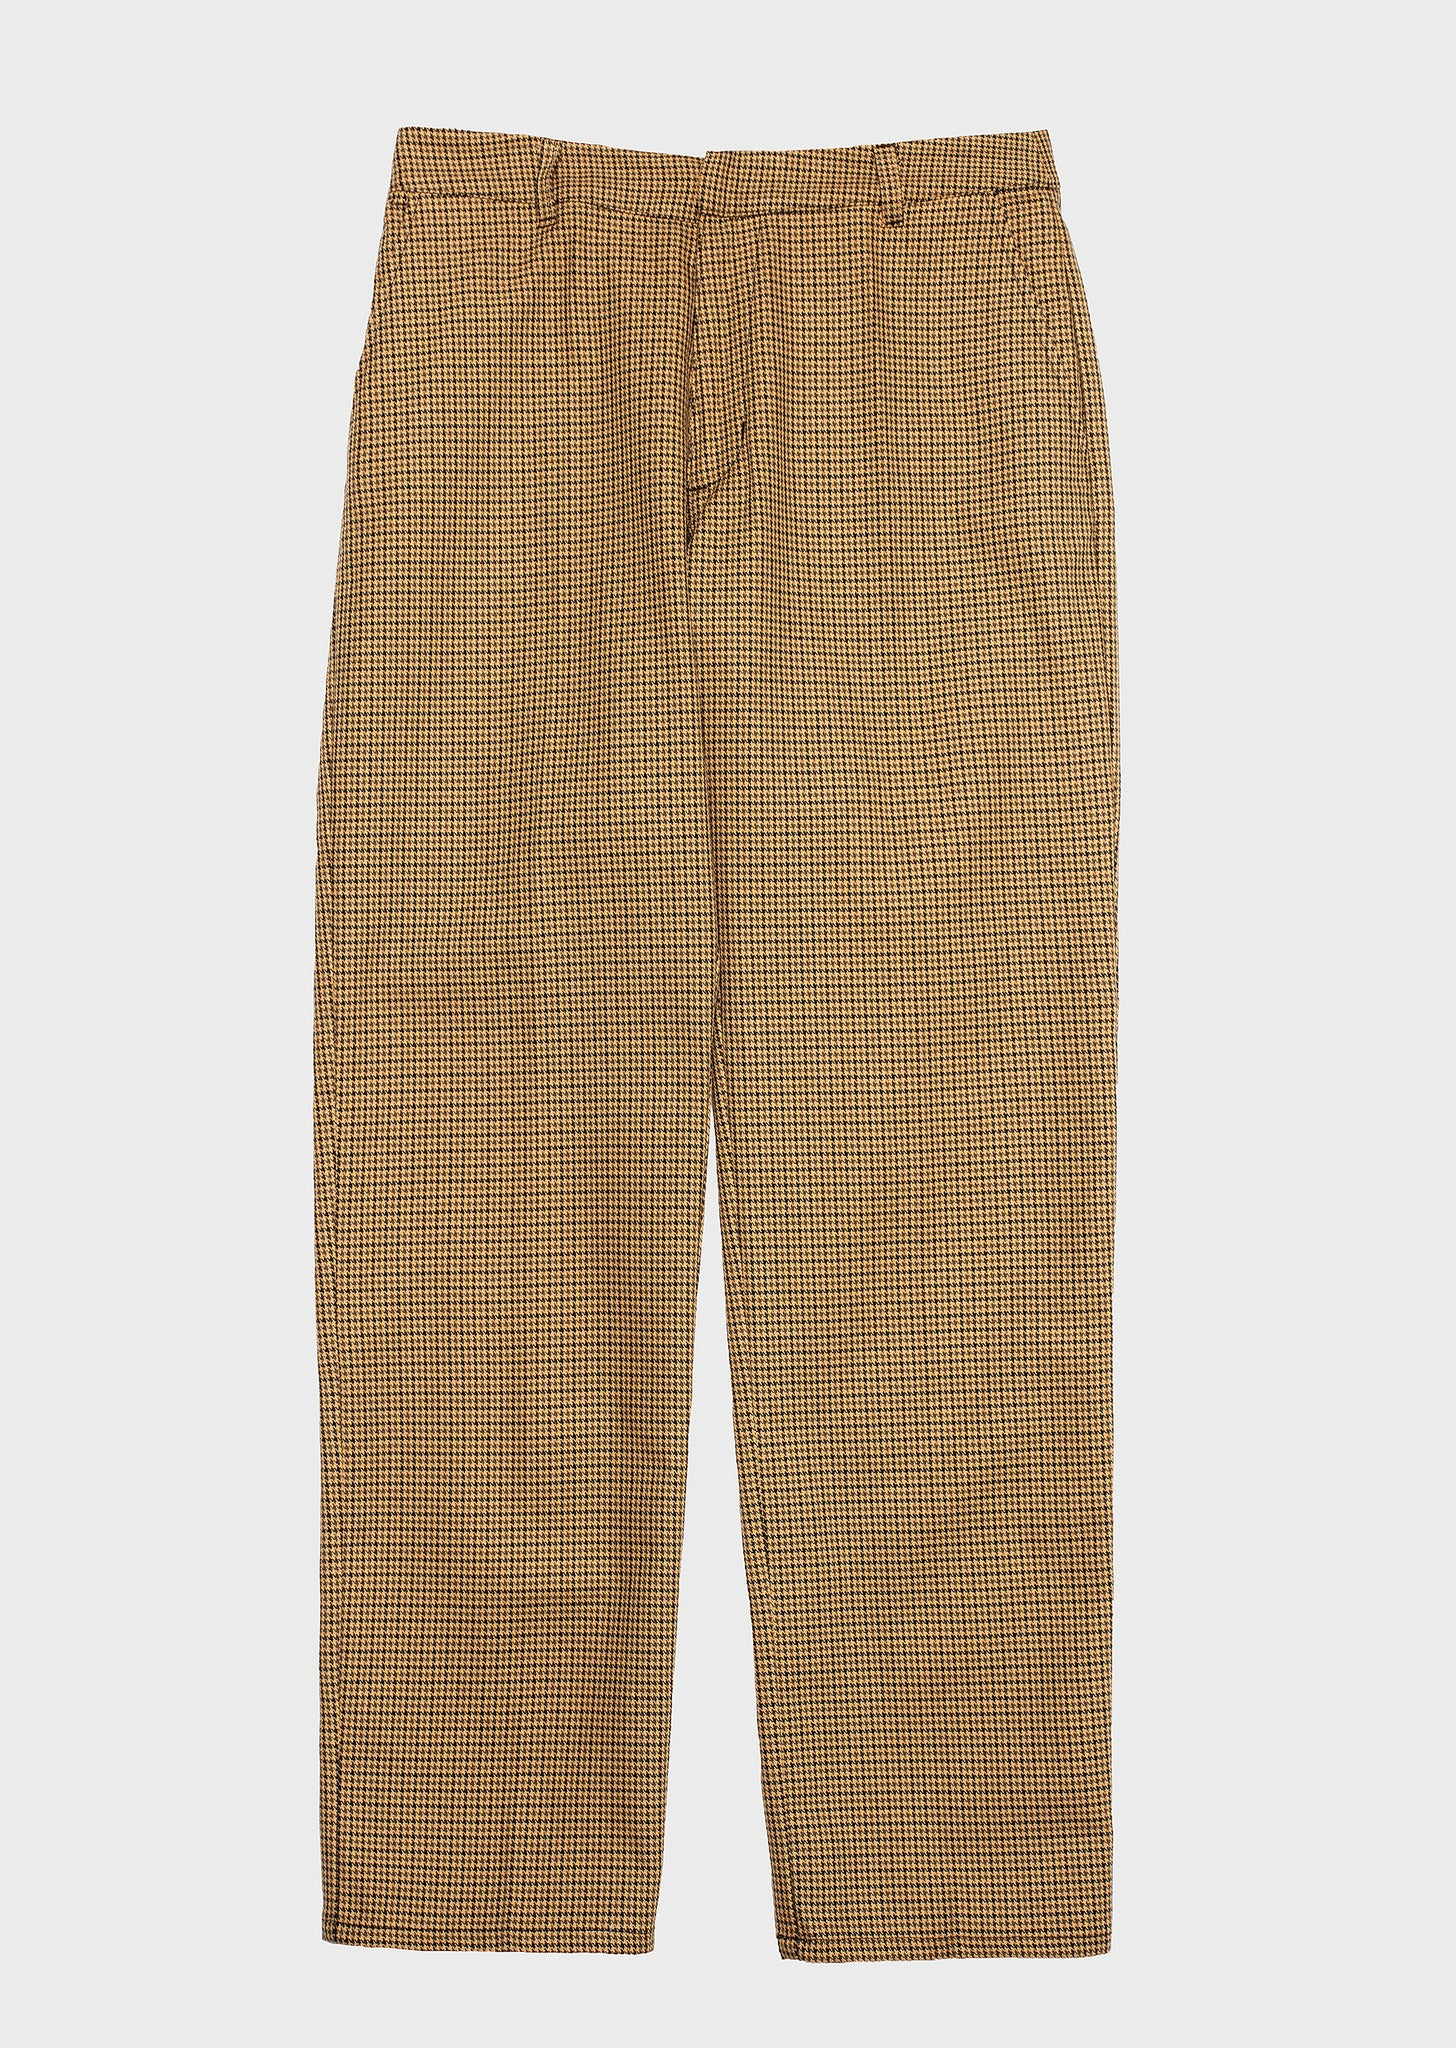 Wool Dress Pant - Houndstooth